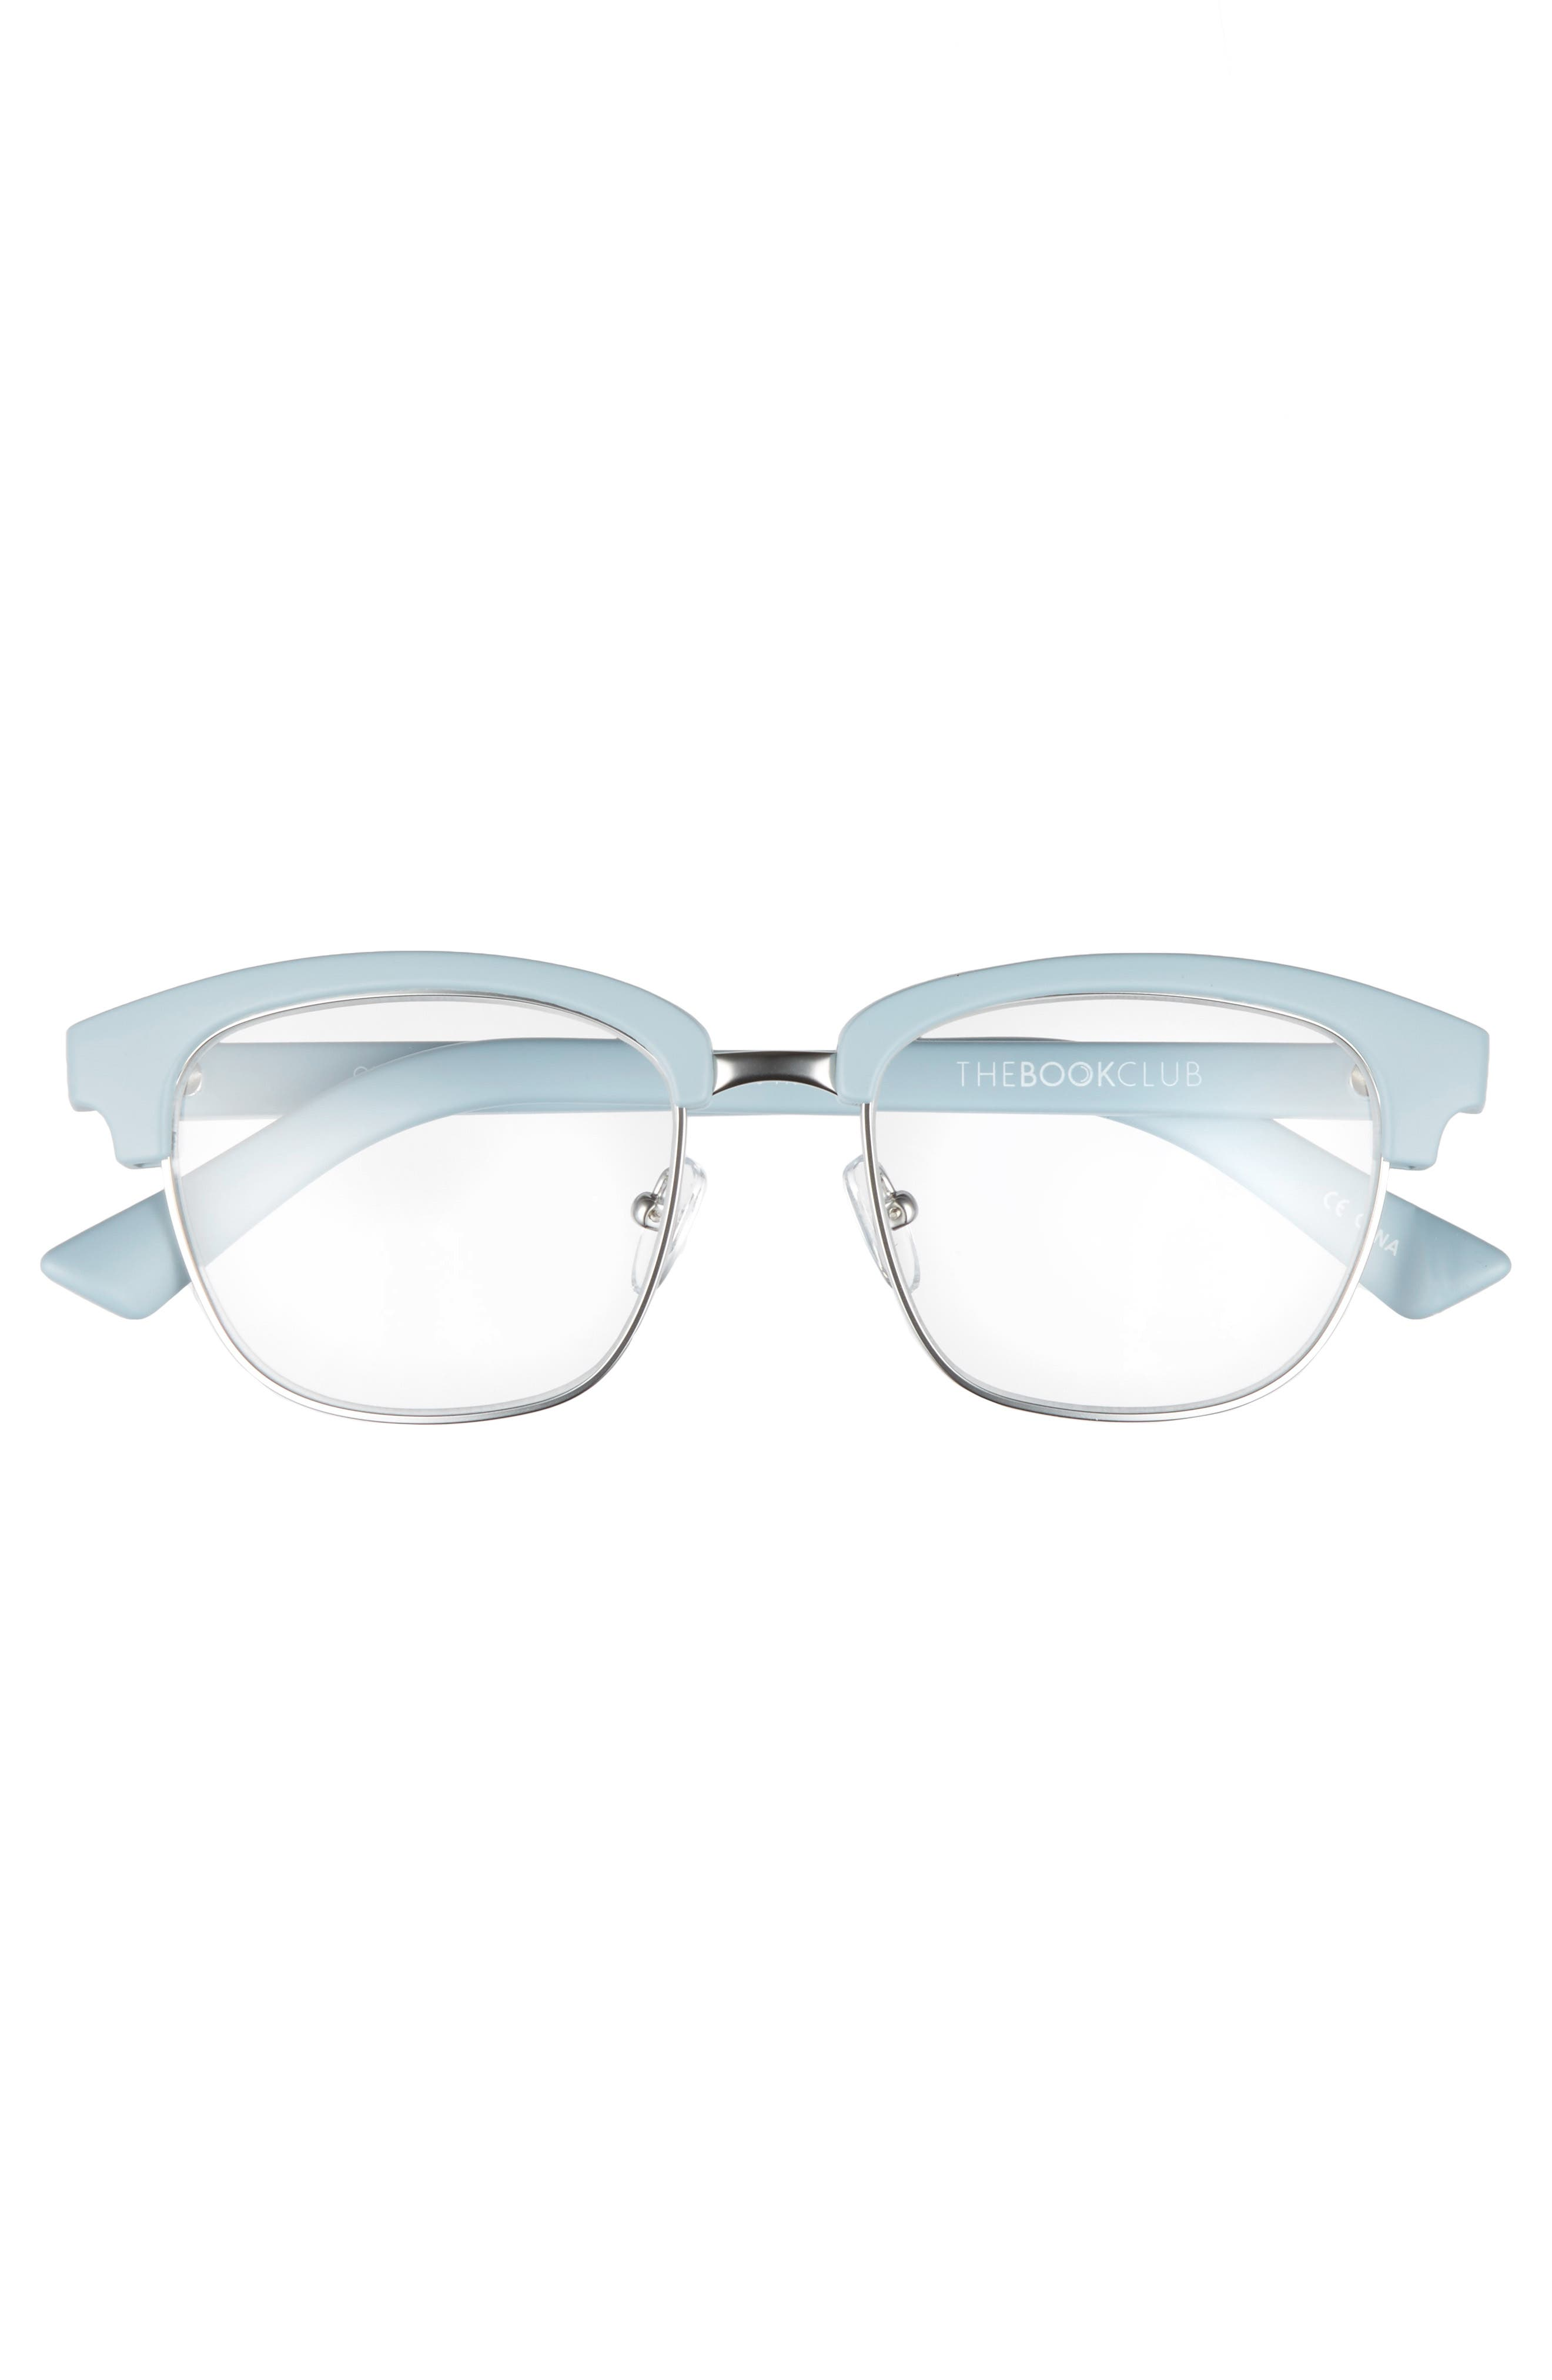 One Drew Over the English Test 52mm Reading Glasses,                             Alternate thumbnail 3, color,                             Sky/ Silver